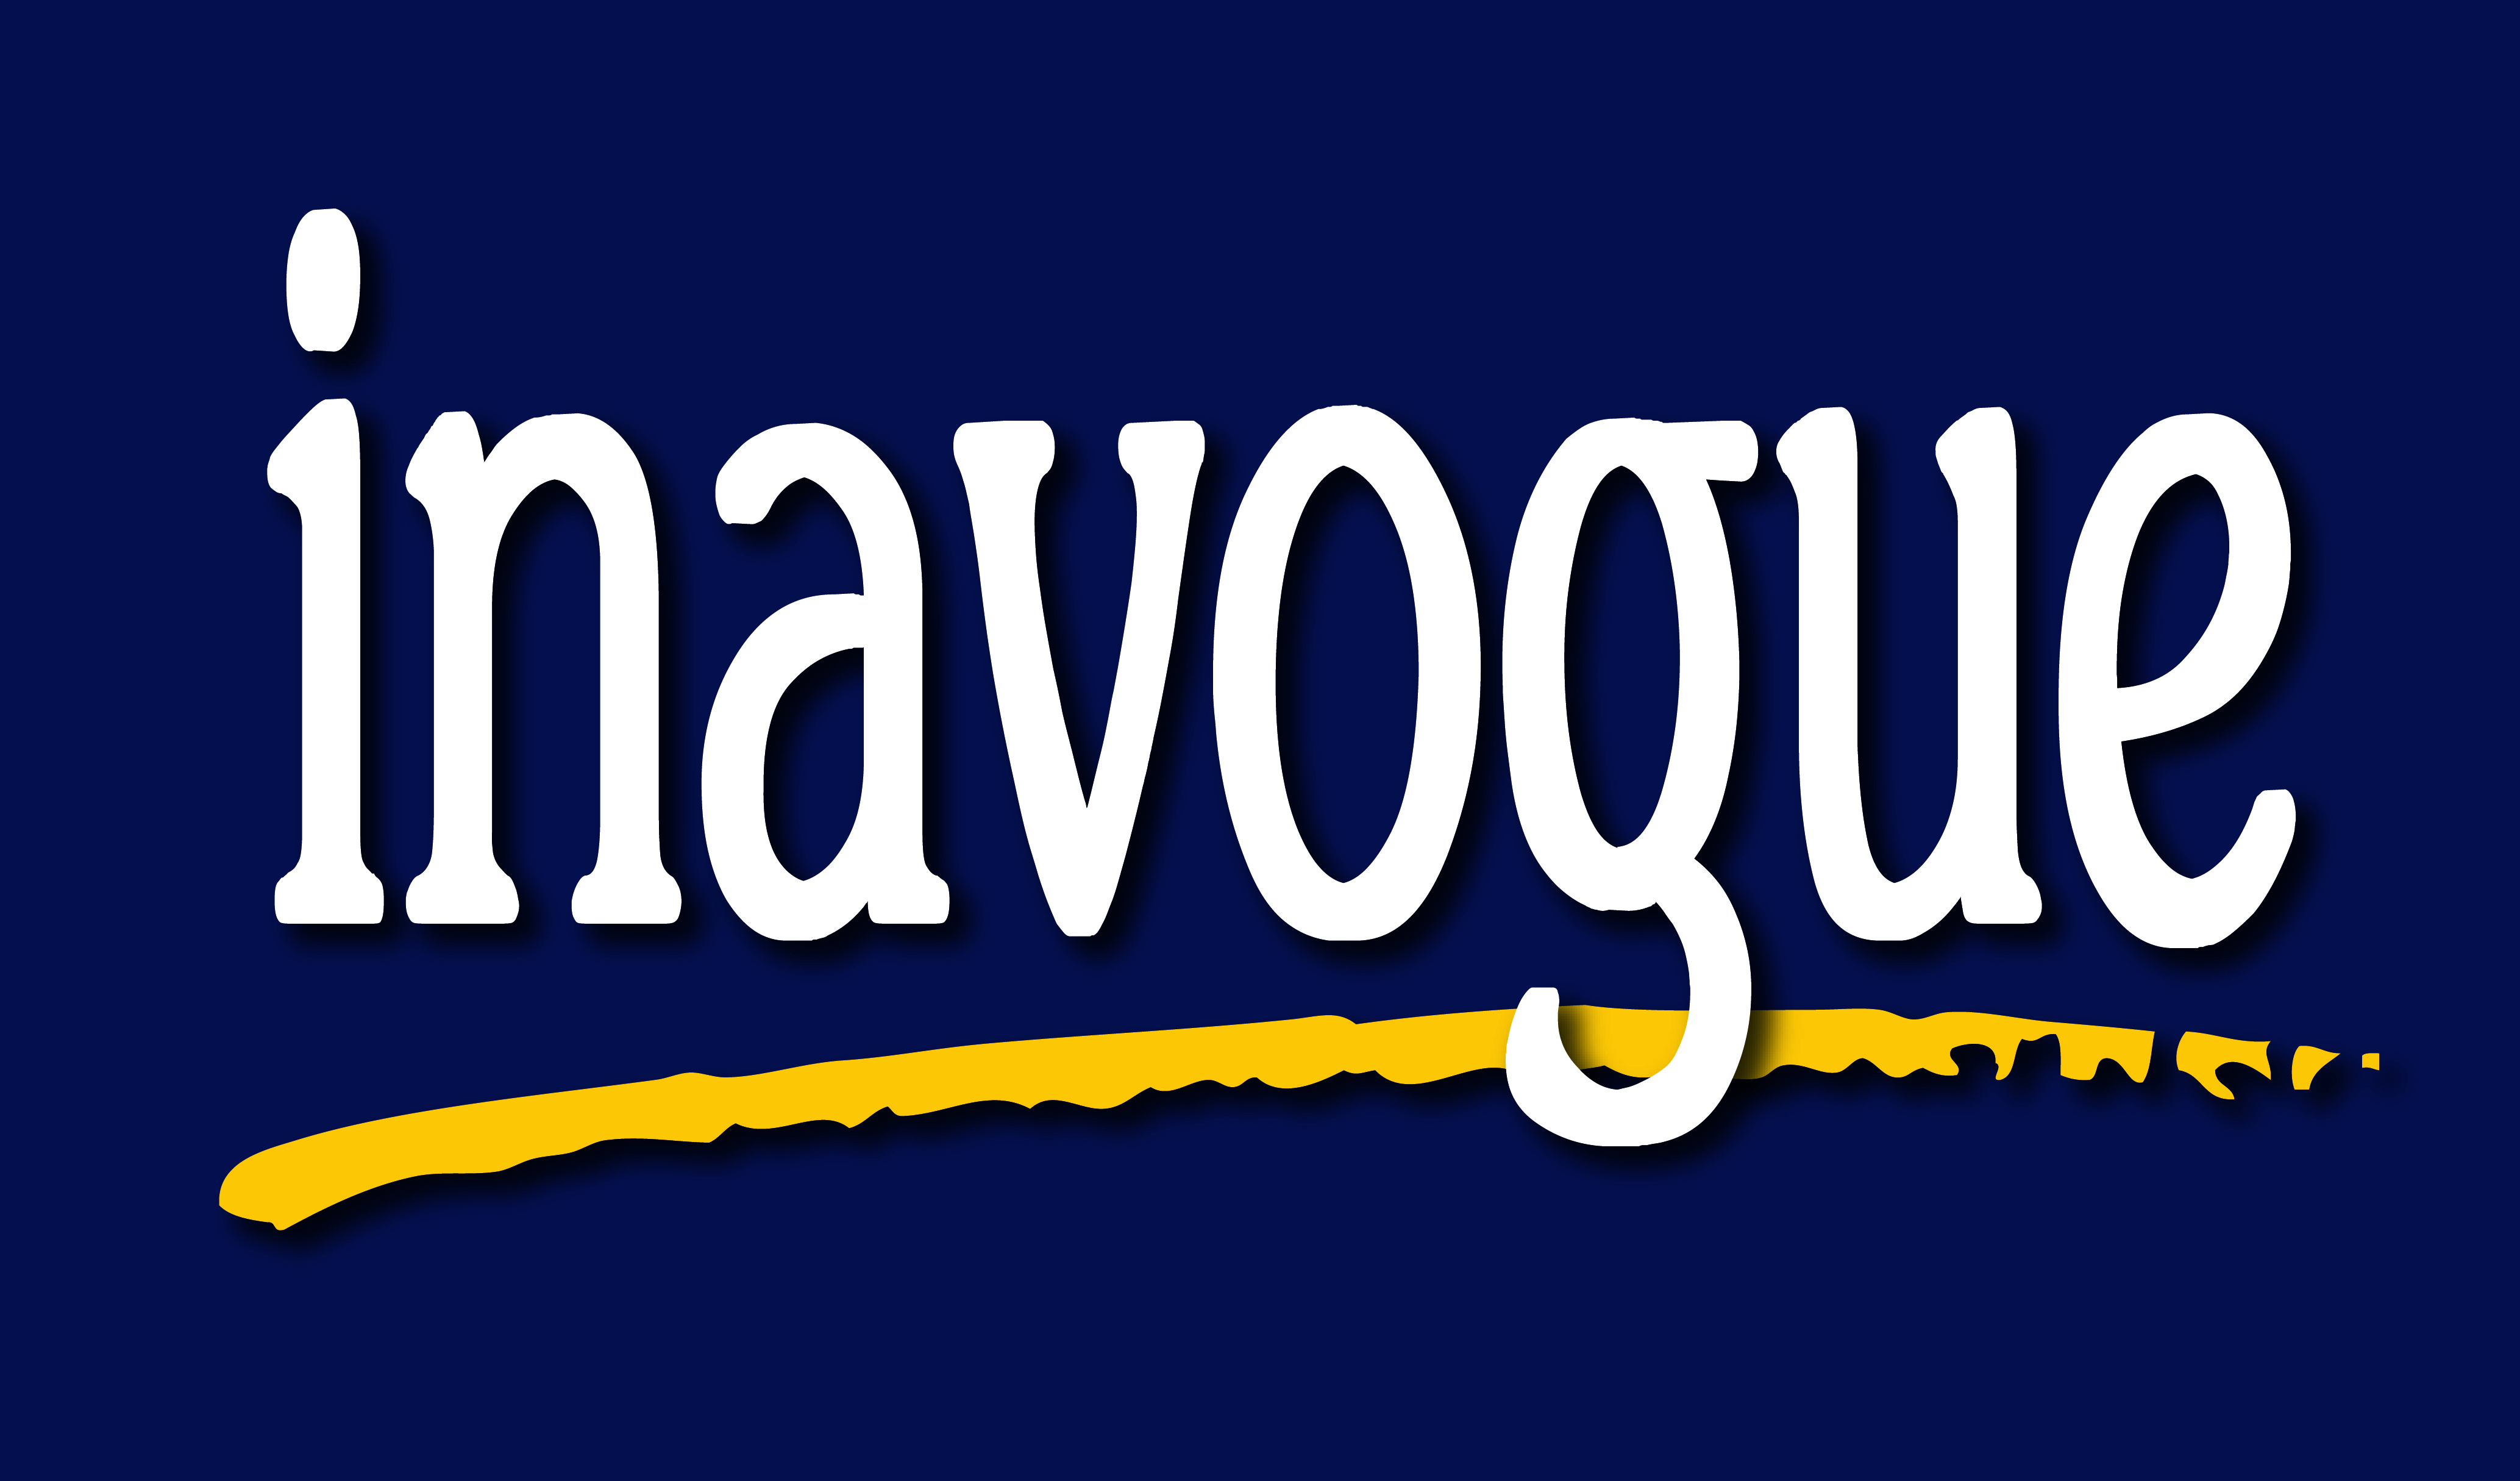 Inavogue Kitchen Cabinets